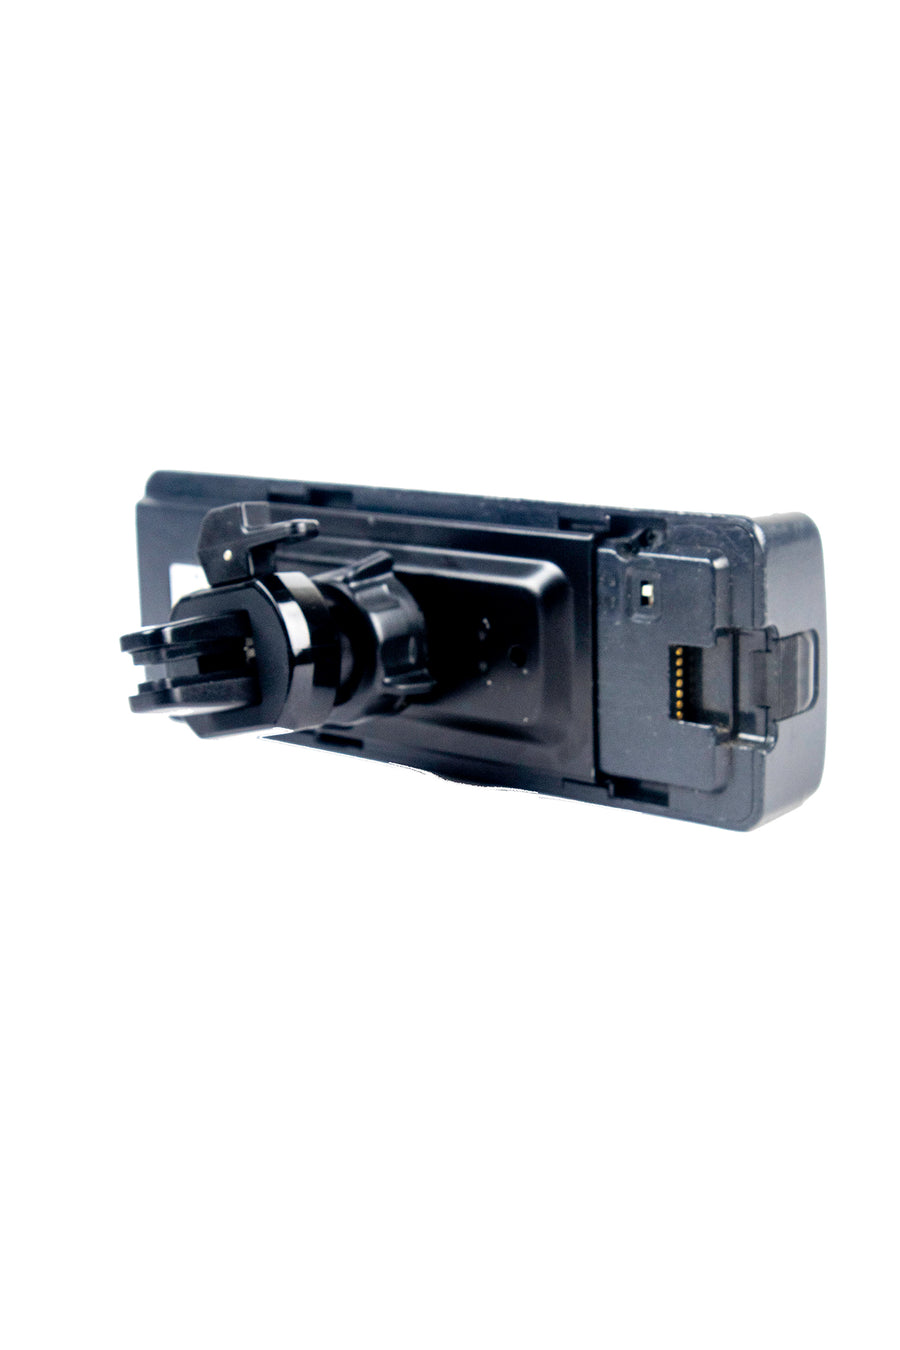 LM-101 Vent Mount For Icom IC-706 IC-7000 IC-7100 IC-880 ID-4100